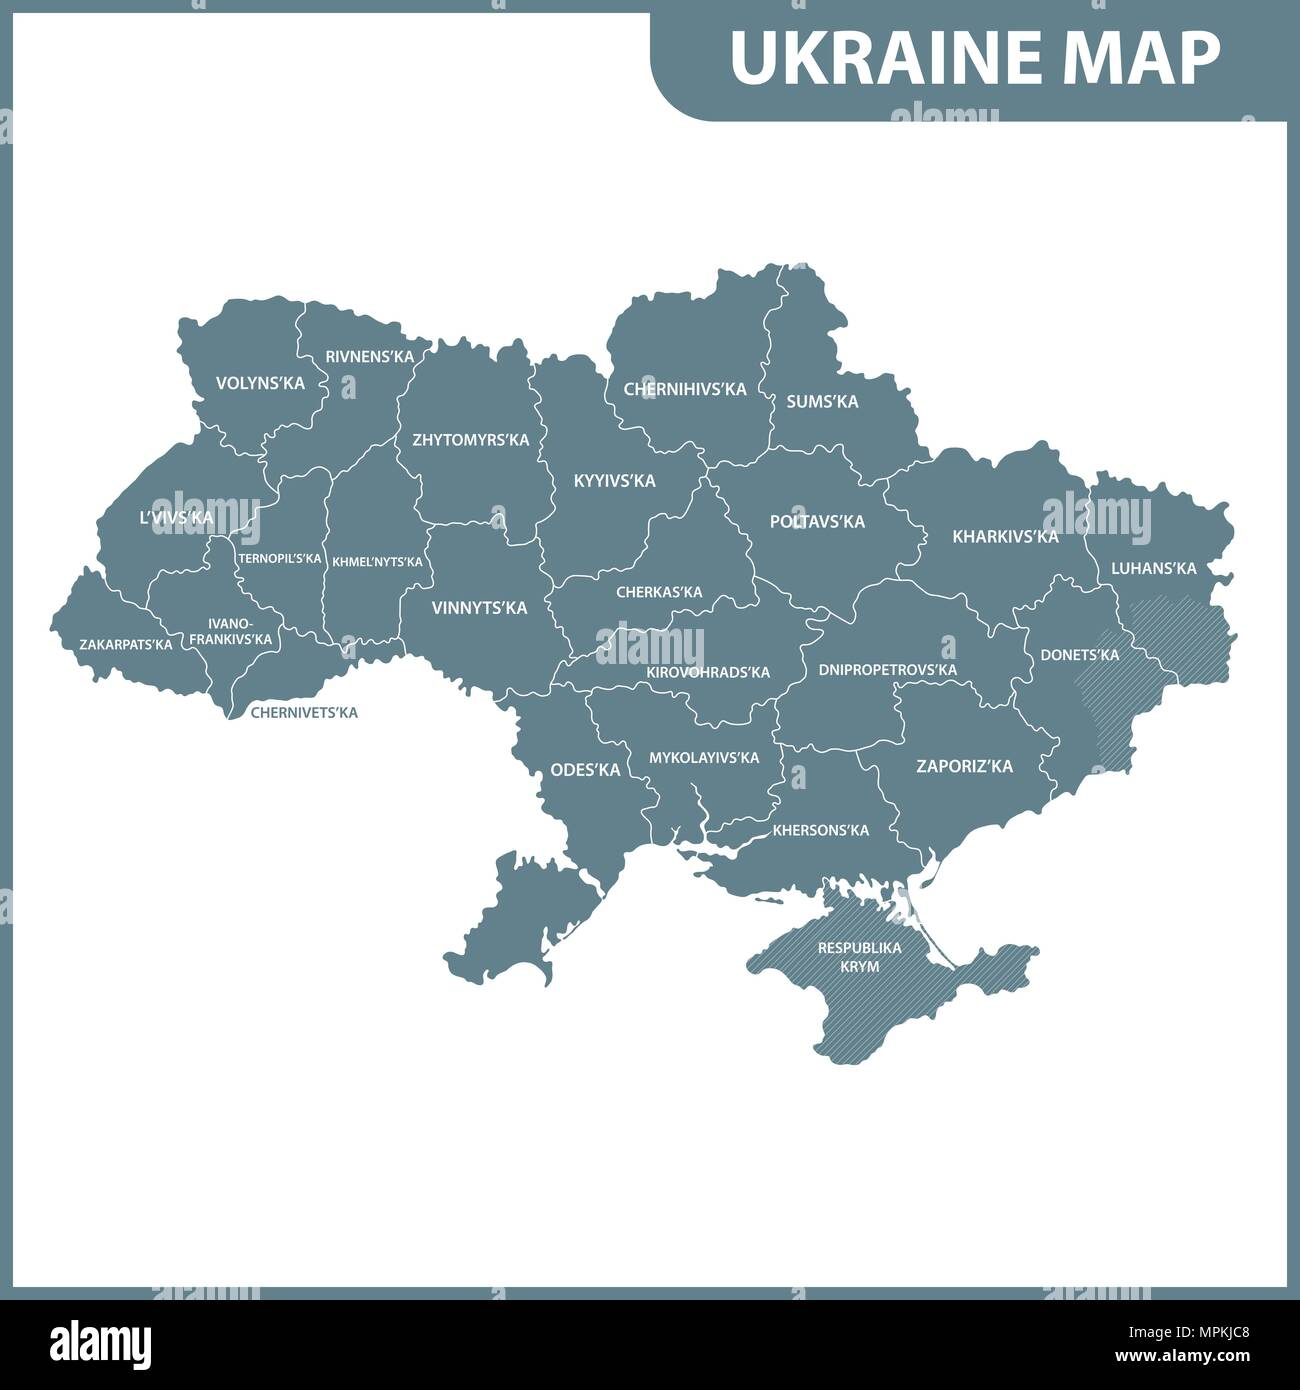 Centers for dog training - Dnipropetrovsk region: a selection of sites